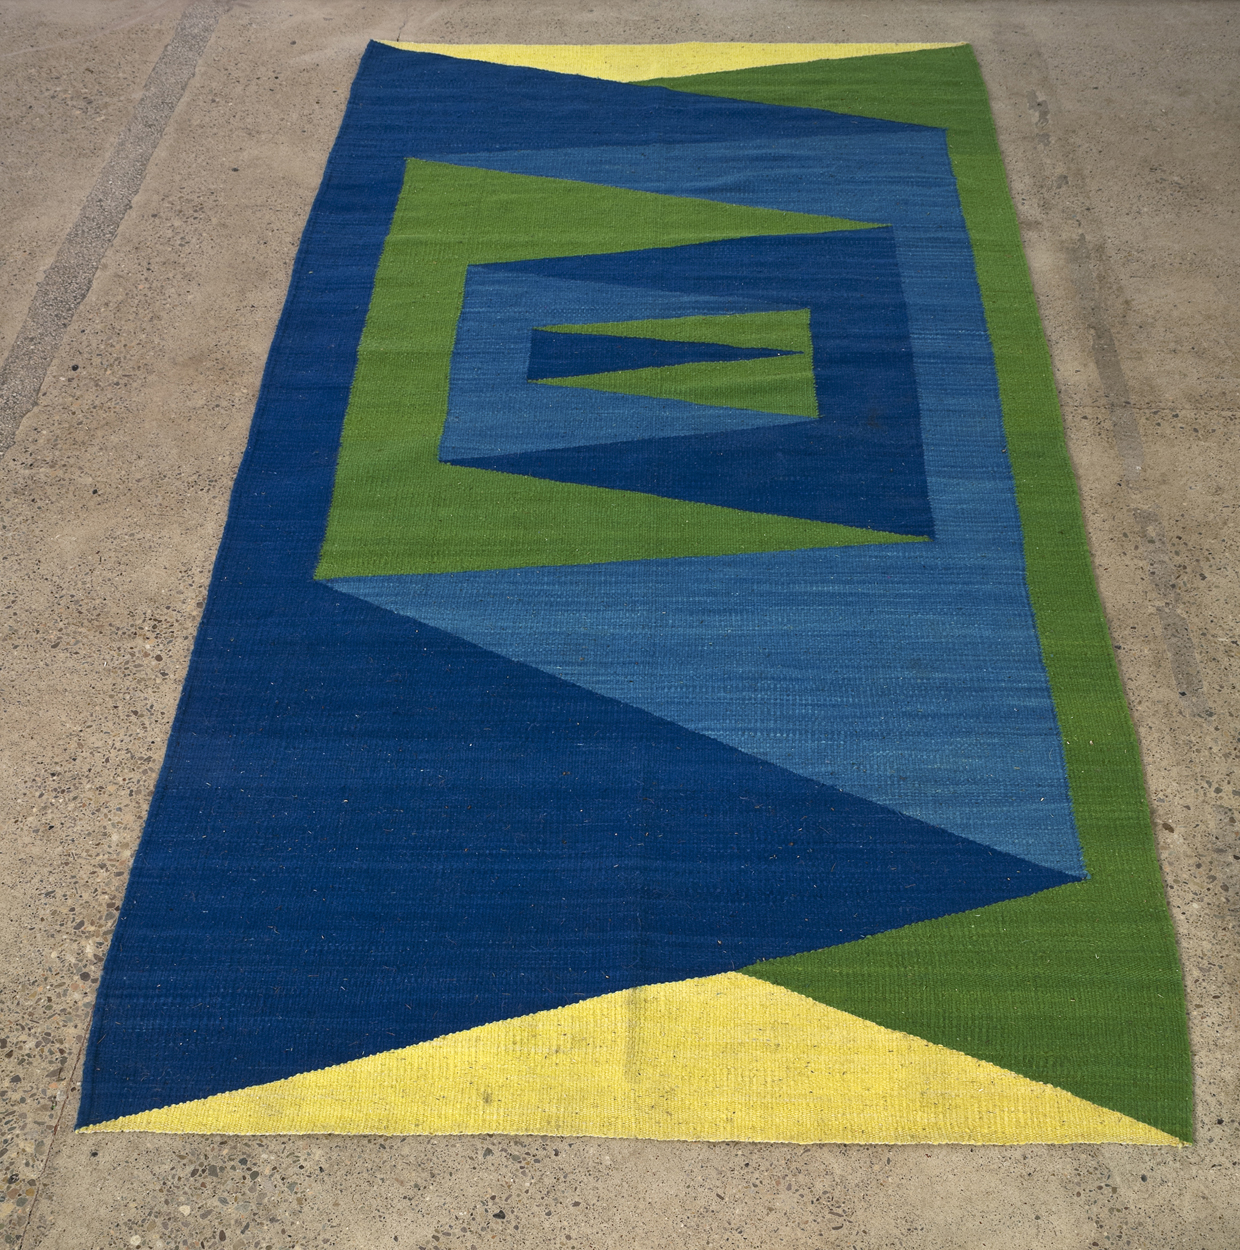 Folded While Woven, 2013 woven wool carpet, 148 x 301 cm